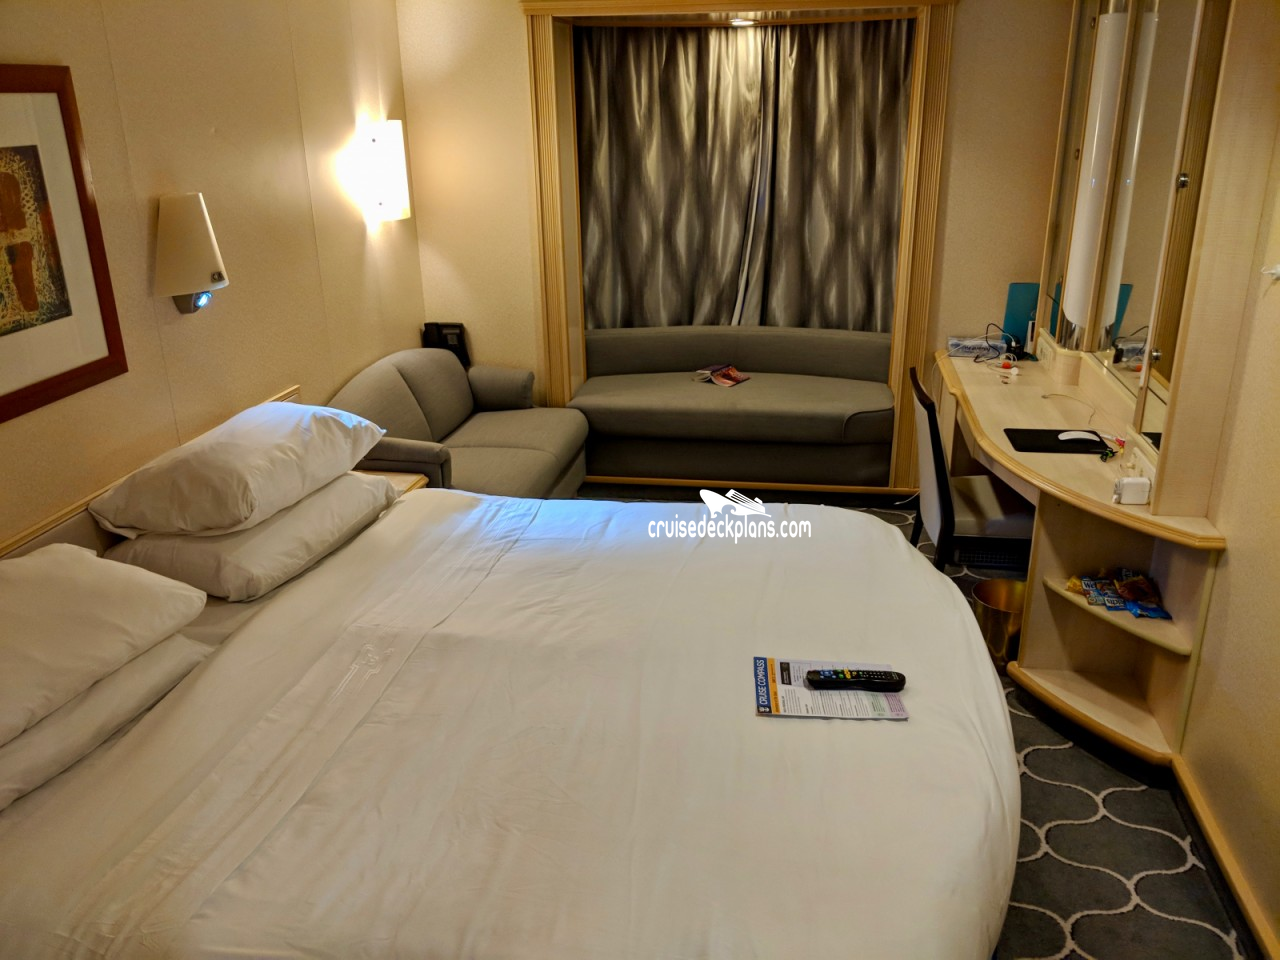 Promenade View Interior Stateroom Picture Uploaded on 09/09/18Photos courtesy of Louis Panagiotopoulos. Cabin 7553.Promenade View Interior Stateroom Picture ...